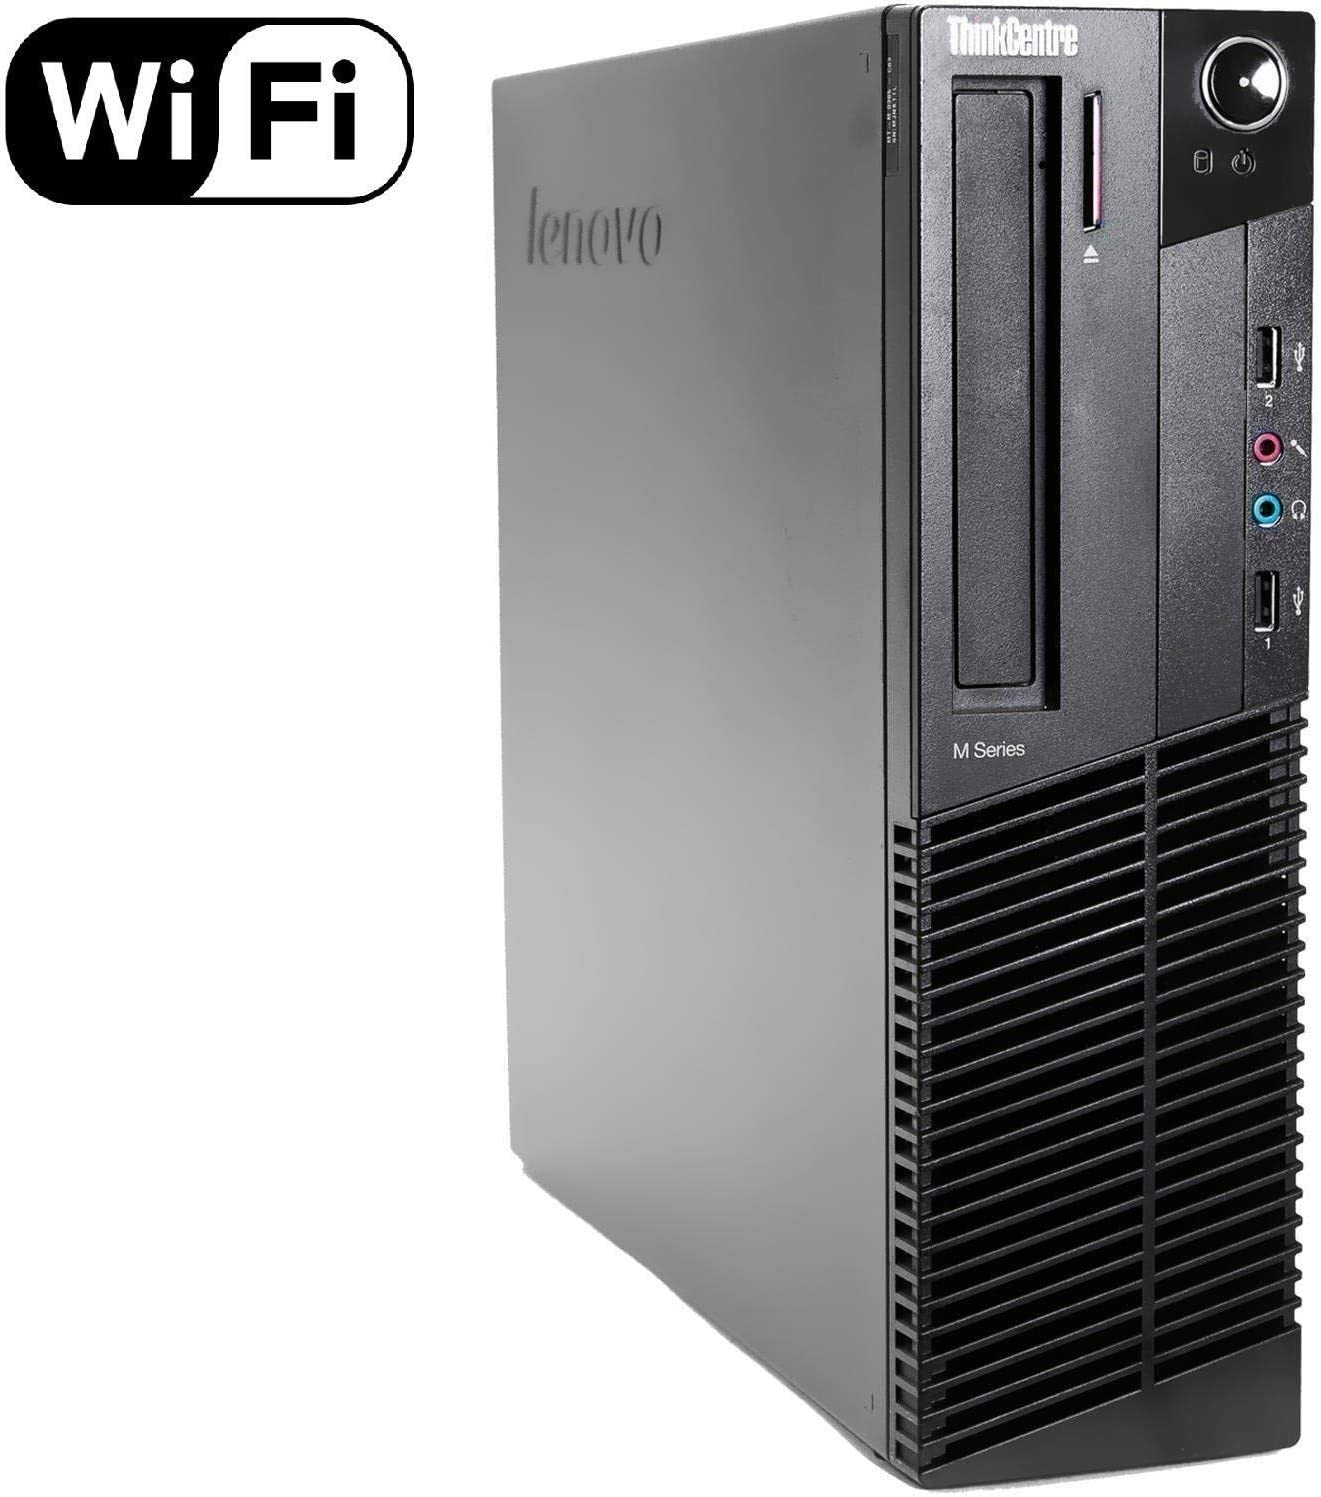 Lenovo ThinkCentre M82 Desktop - Intel Core i5-3470 up to 3.6GHz, 16GB DDR3, 128GB SSD, DVD, Windows 10 Professional (Renewed)